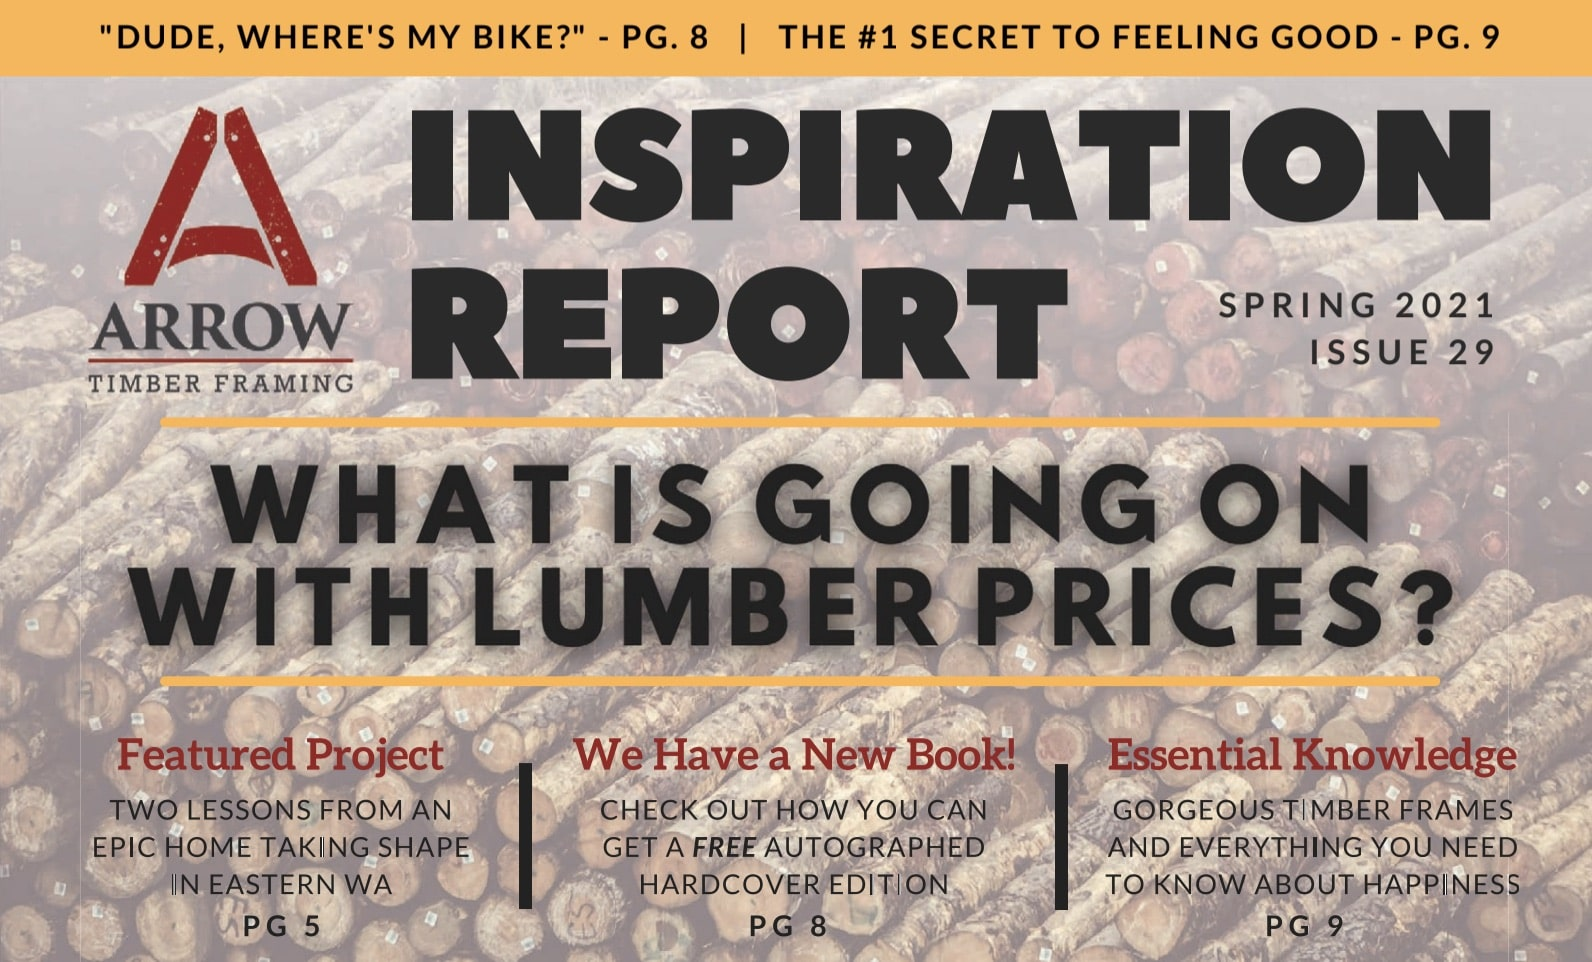 Inspiration Report | Timber Frame Articles